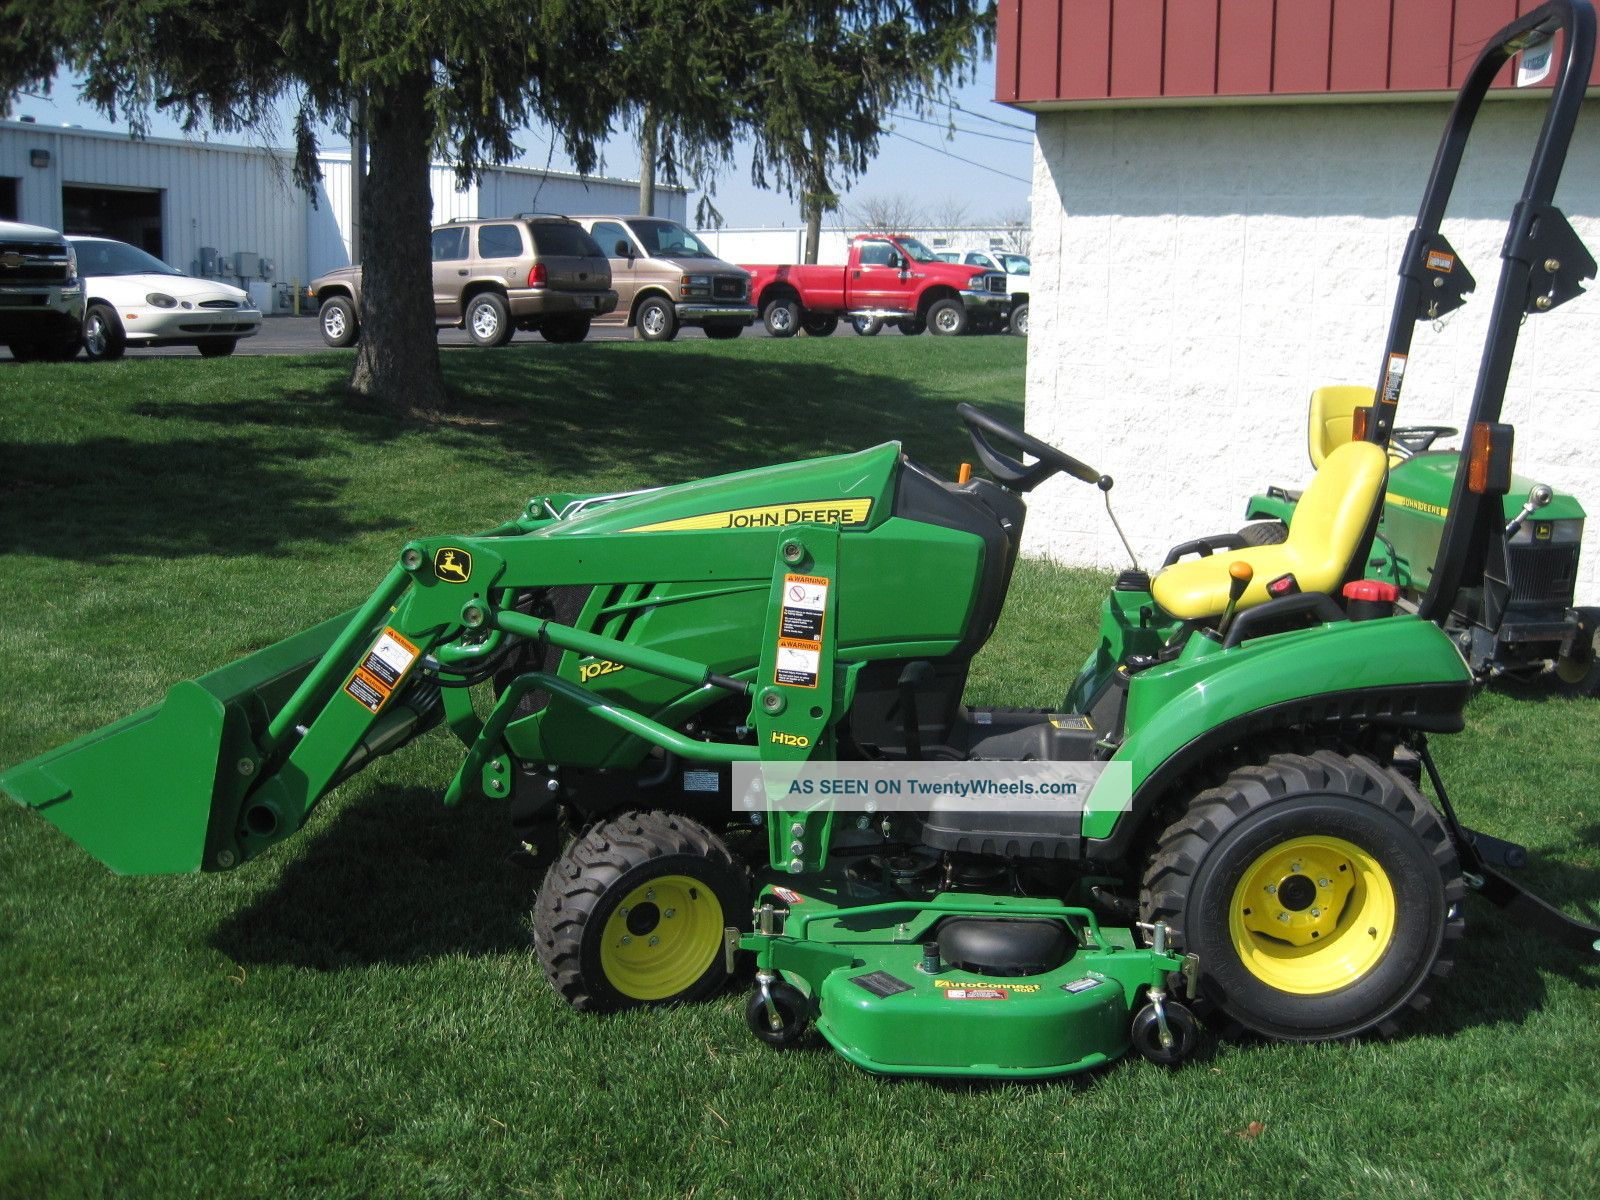 New John Deere 1 Series 1026r Sub Compact Tractor With ...